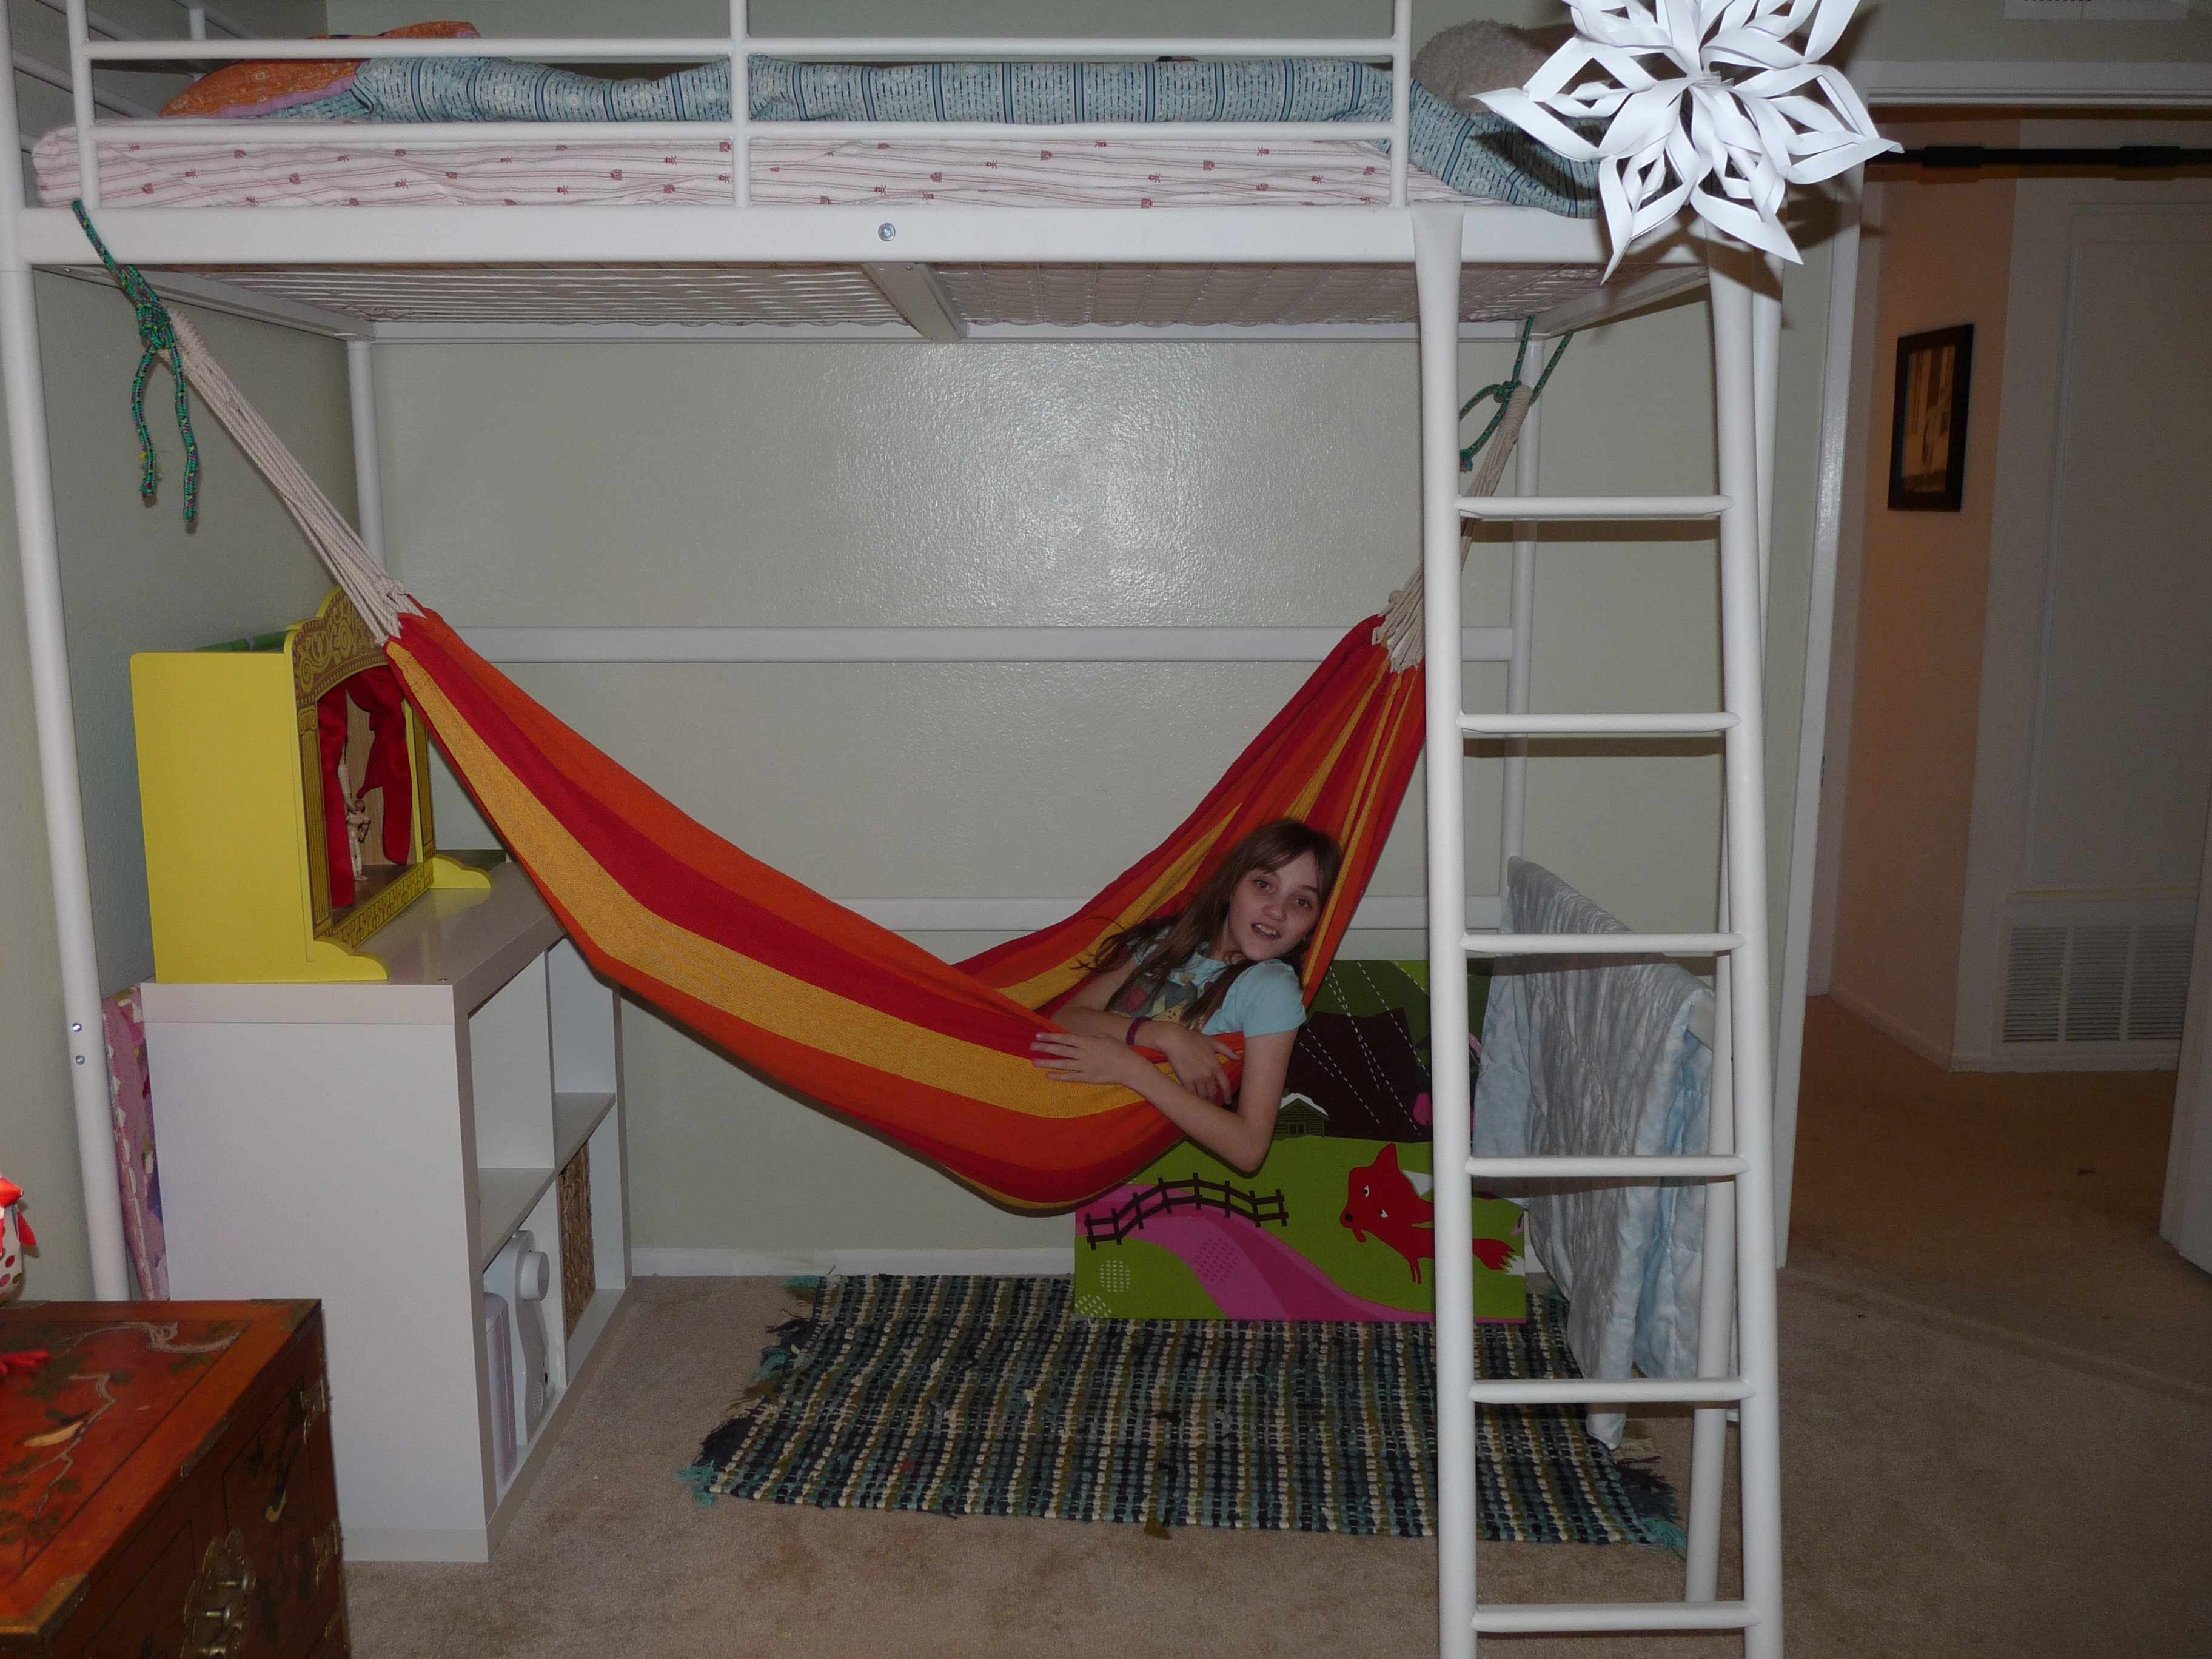 fancy white loft beds for teenagers with swing and white rack on beige tile floor with rug for teen bedroom decor ideas